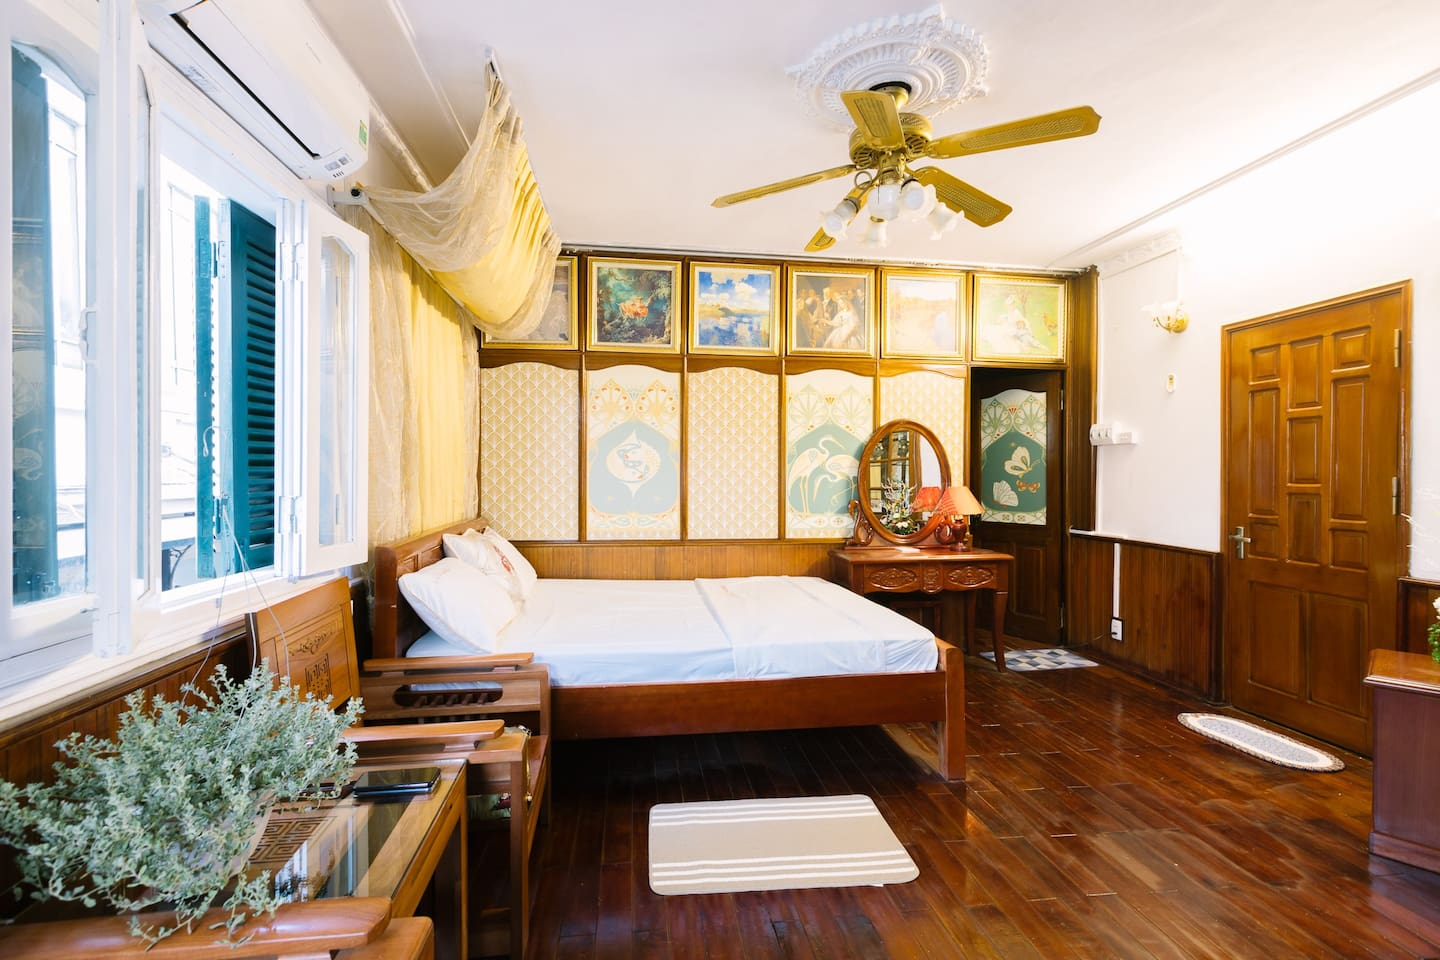 Classic design with all facilities equipped